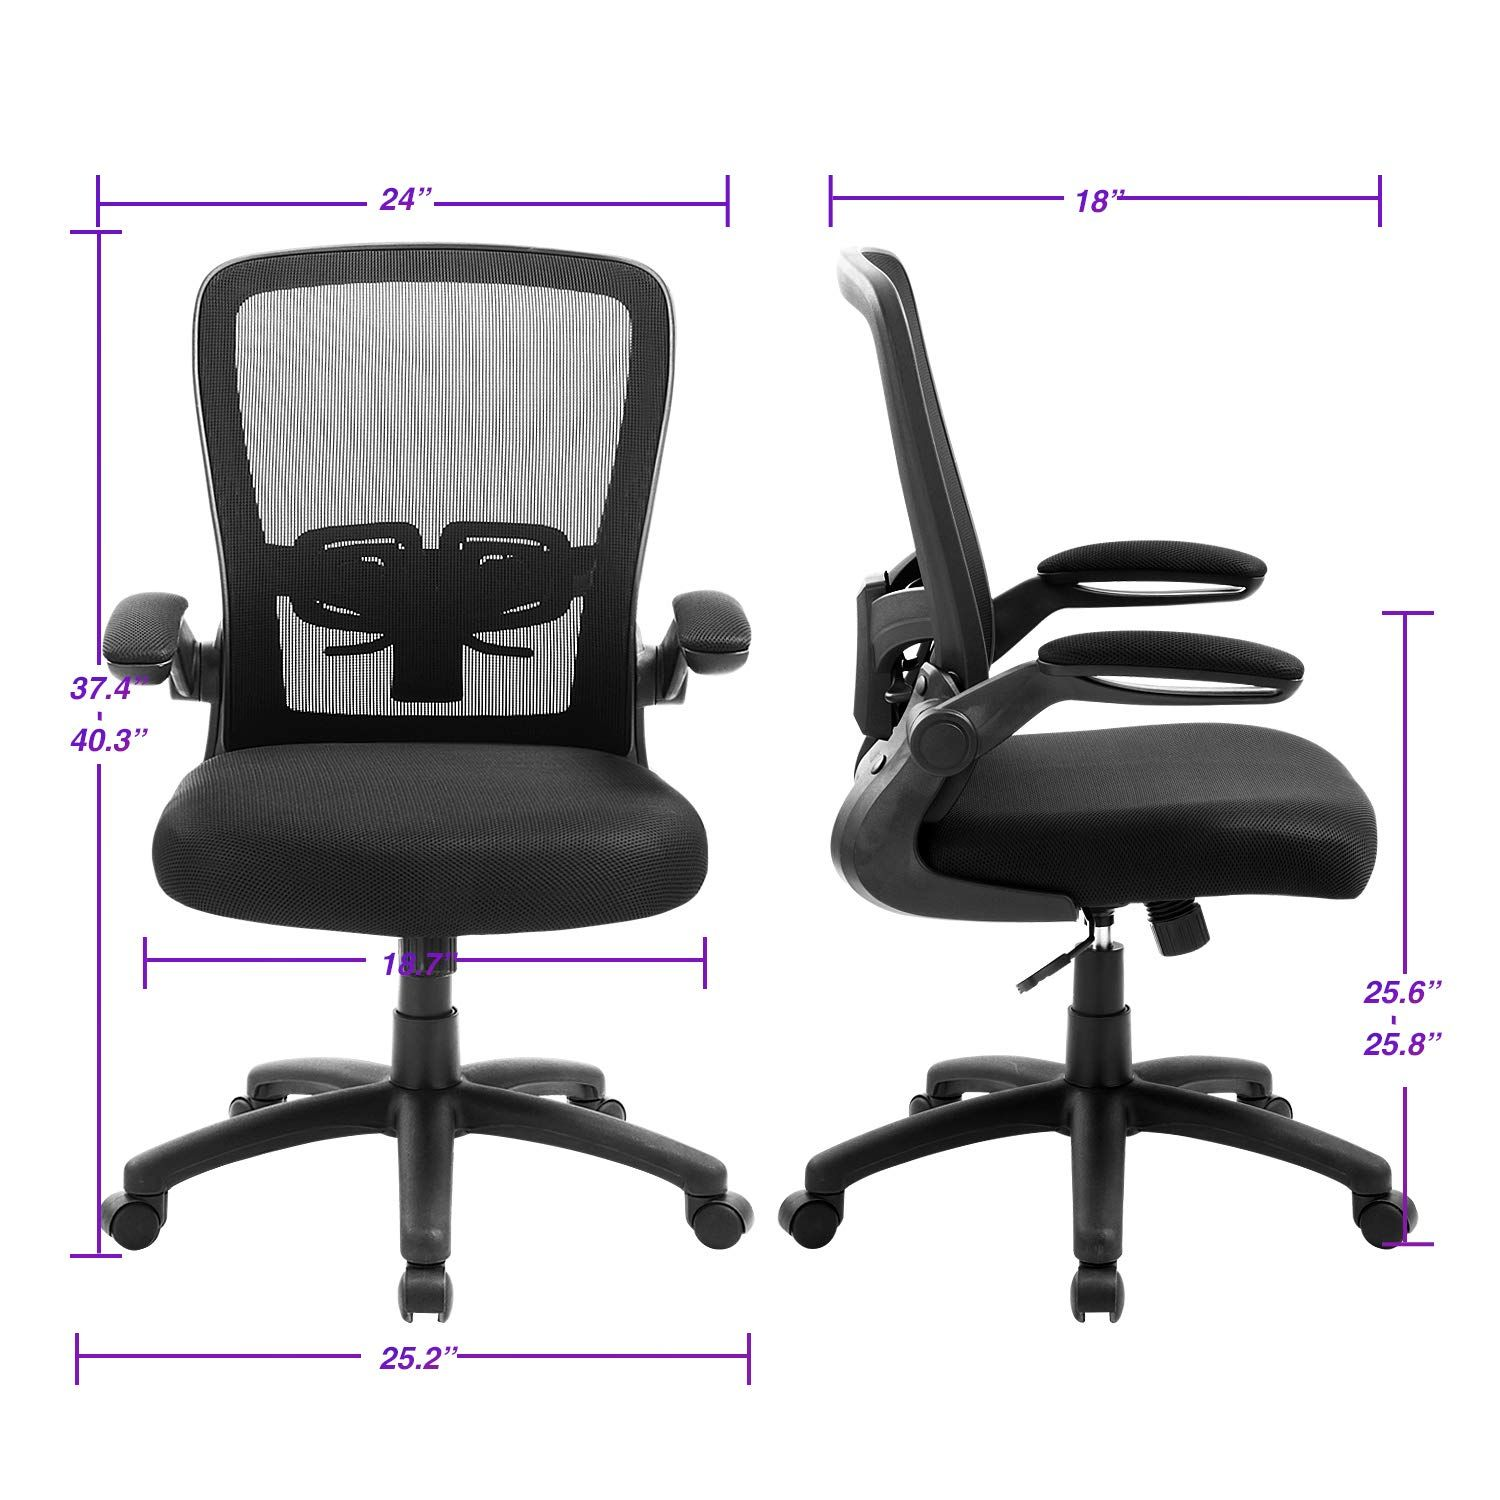 Office Chair Zlhecto Ergonomic Desk Chair With Adjustable Height And Lumbar Support High Back Me Home Office Furniture Mesh Computer Chair Ergonomic Desk Chair